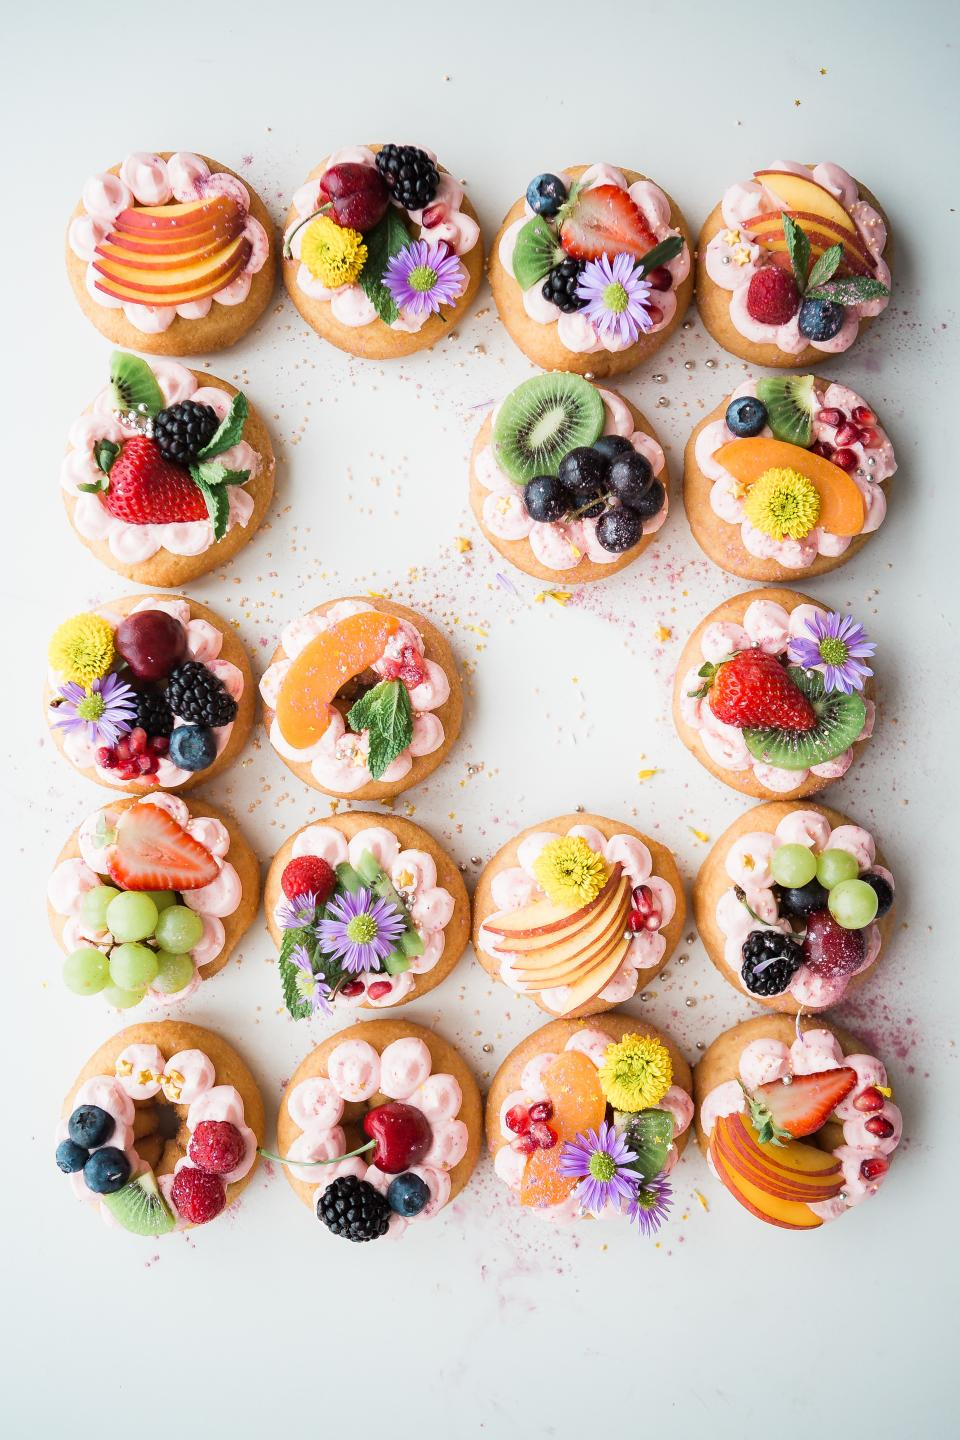 cupcake desserts sweets food fruits flower toppings